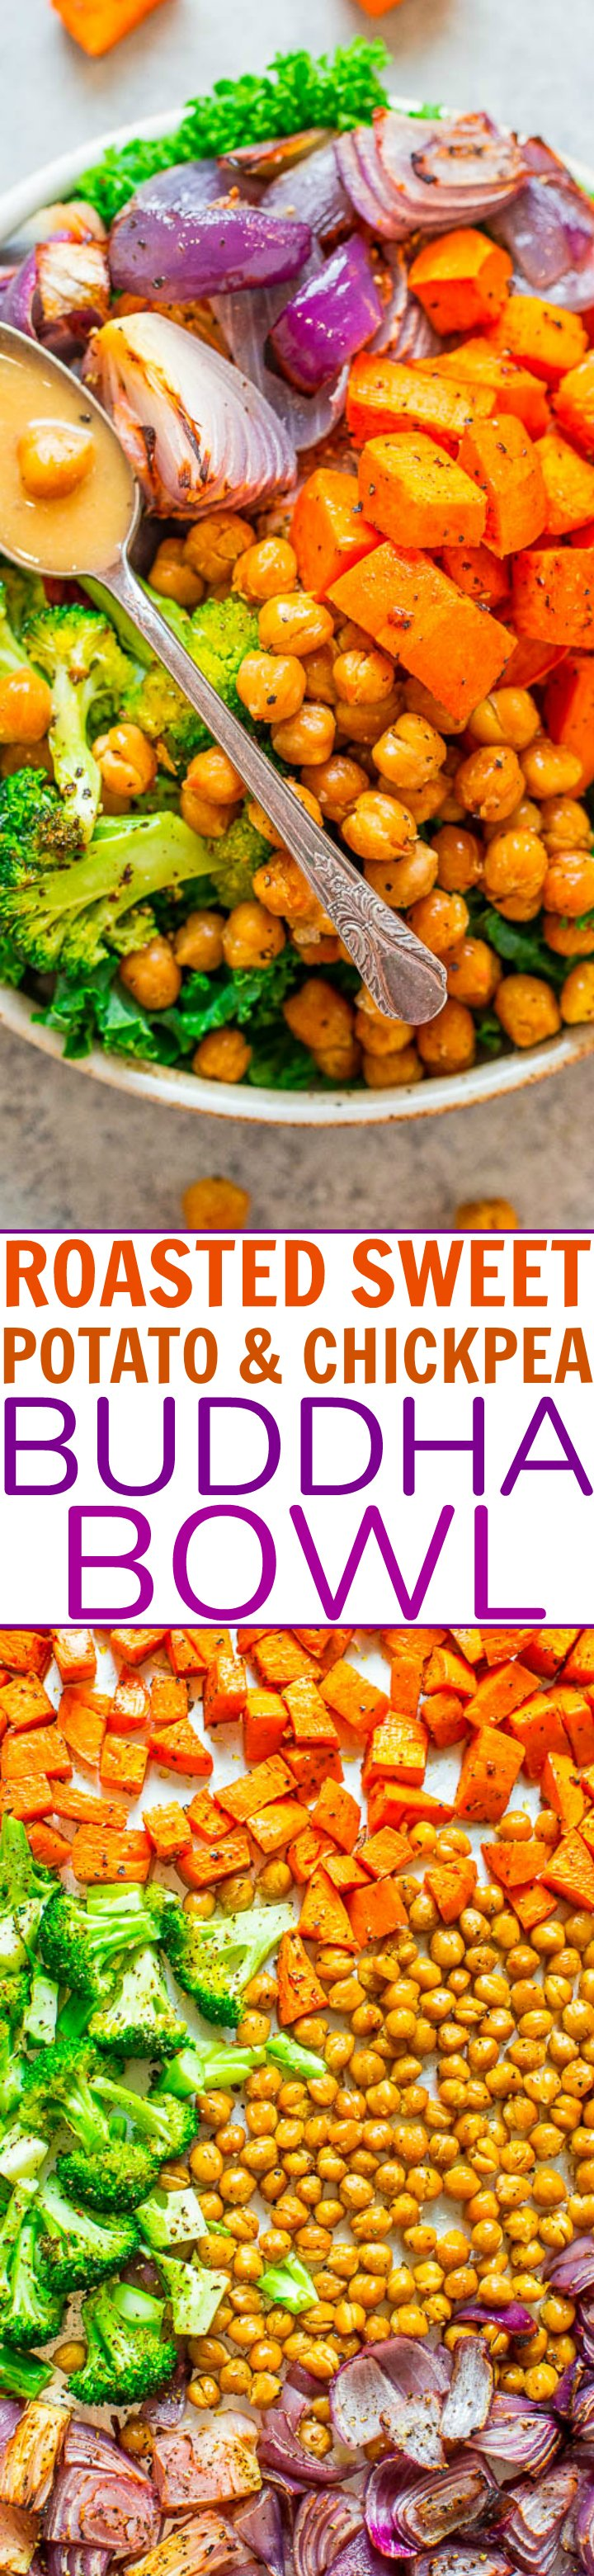 Chickpea and Sweet Potato Bowl — A big ole round bowl full of goodness just like Buddha!! The bowls are fast, EASY, naturally vegan and gluten-free! If you need a HEALTHY recipe that tastes like comfort food, this is it!!